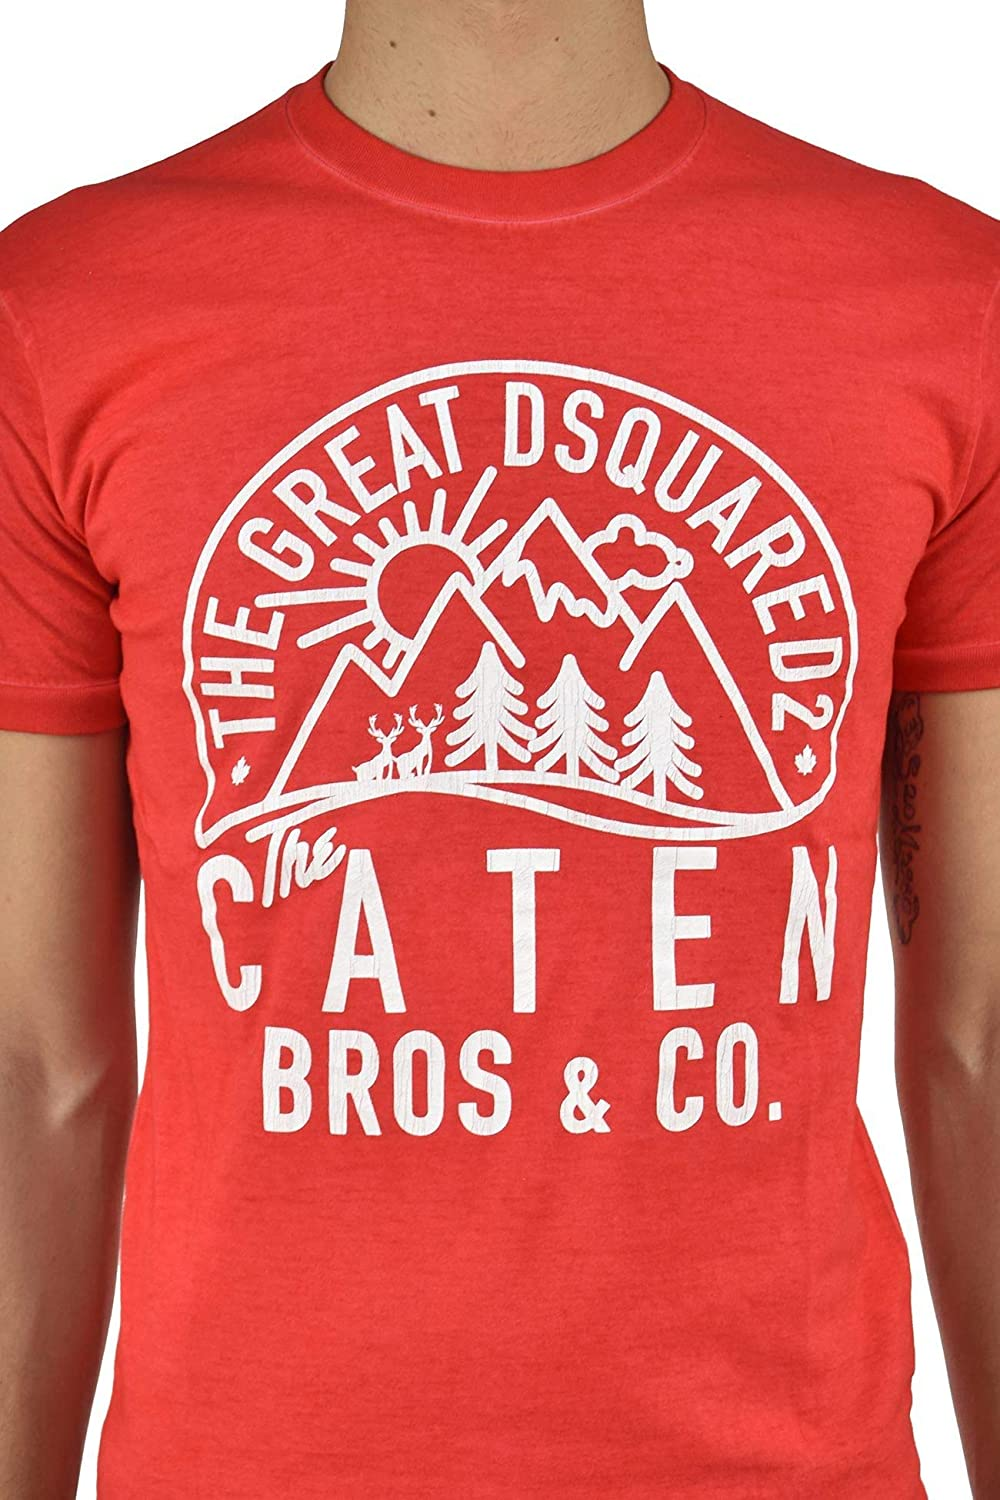 DSQUARED2 T-Shirt Caten Men New Color: Red Size: M